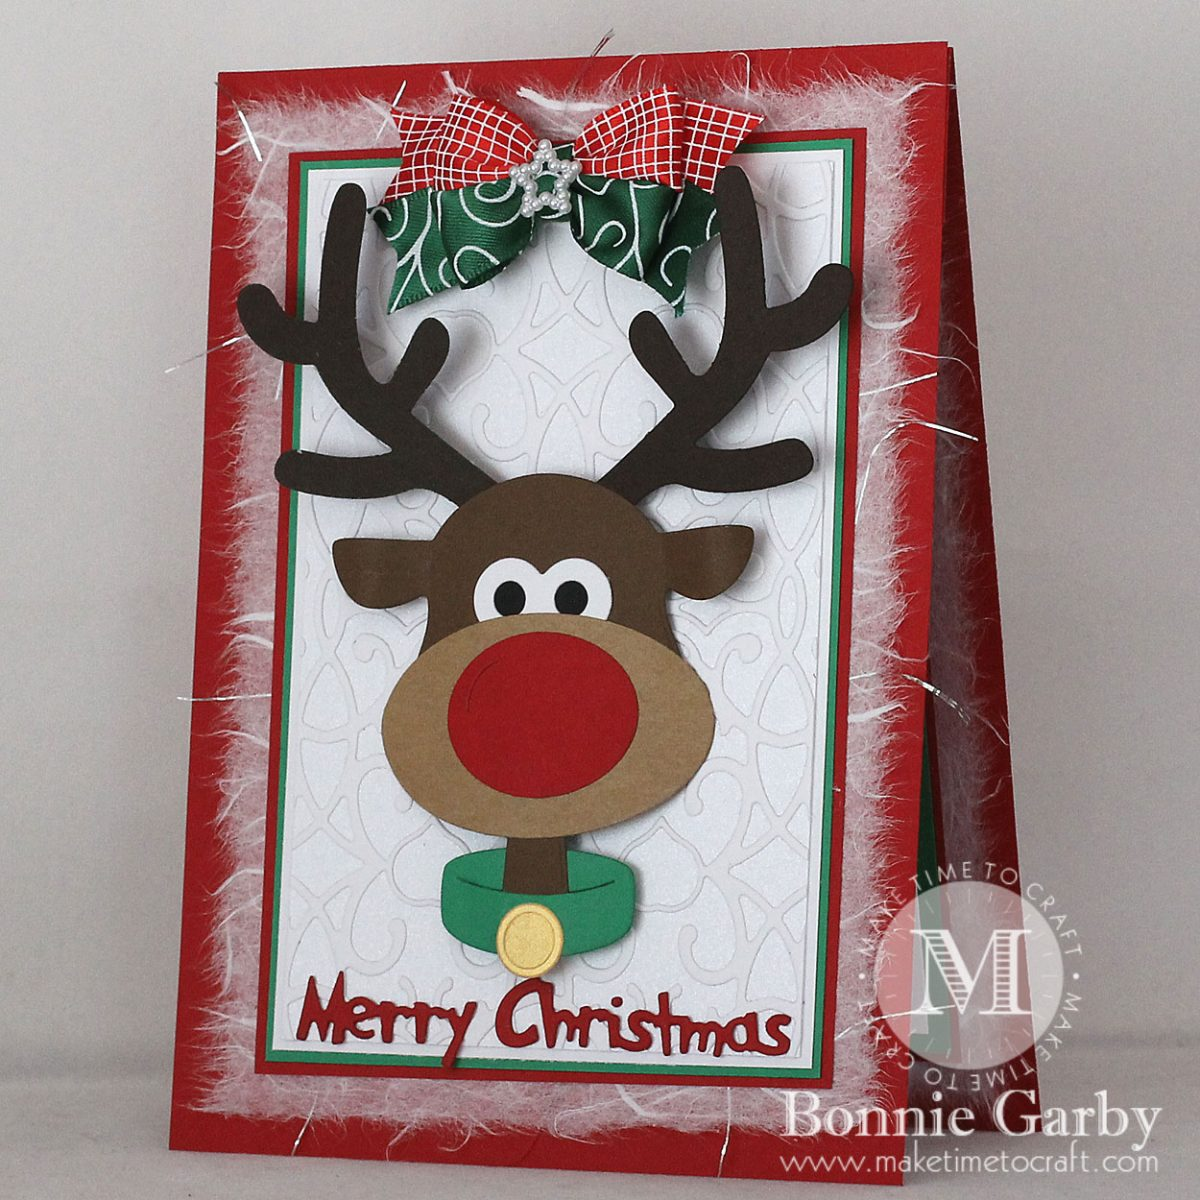 Brad the Reindeer Wishes you a Merry Christmas